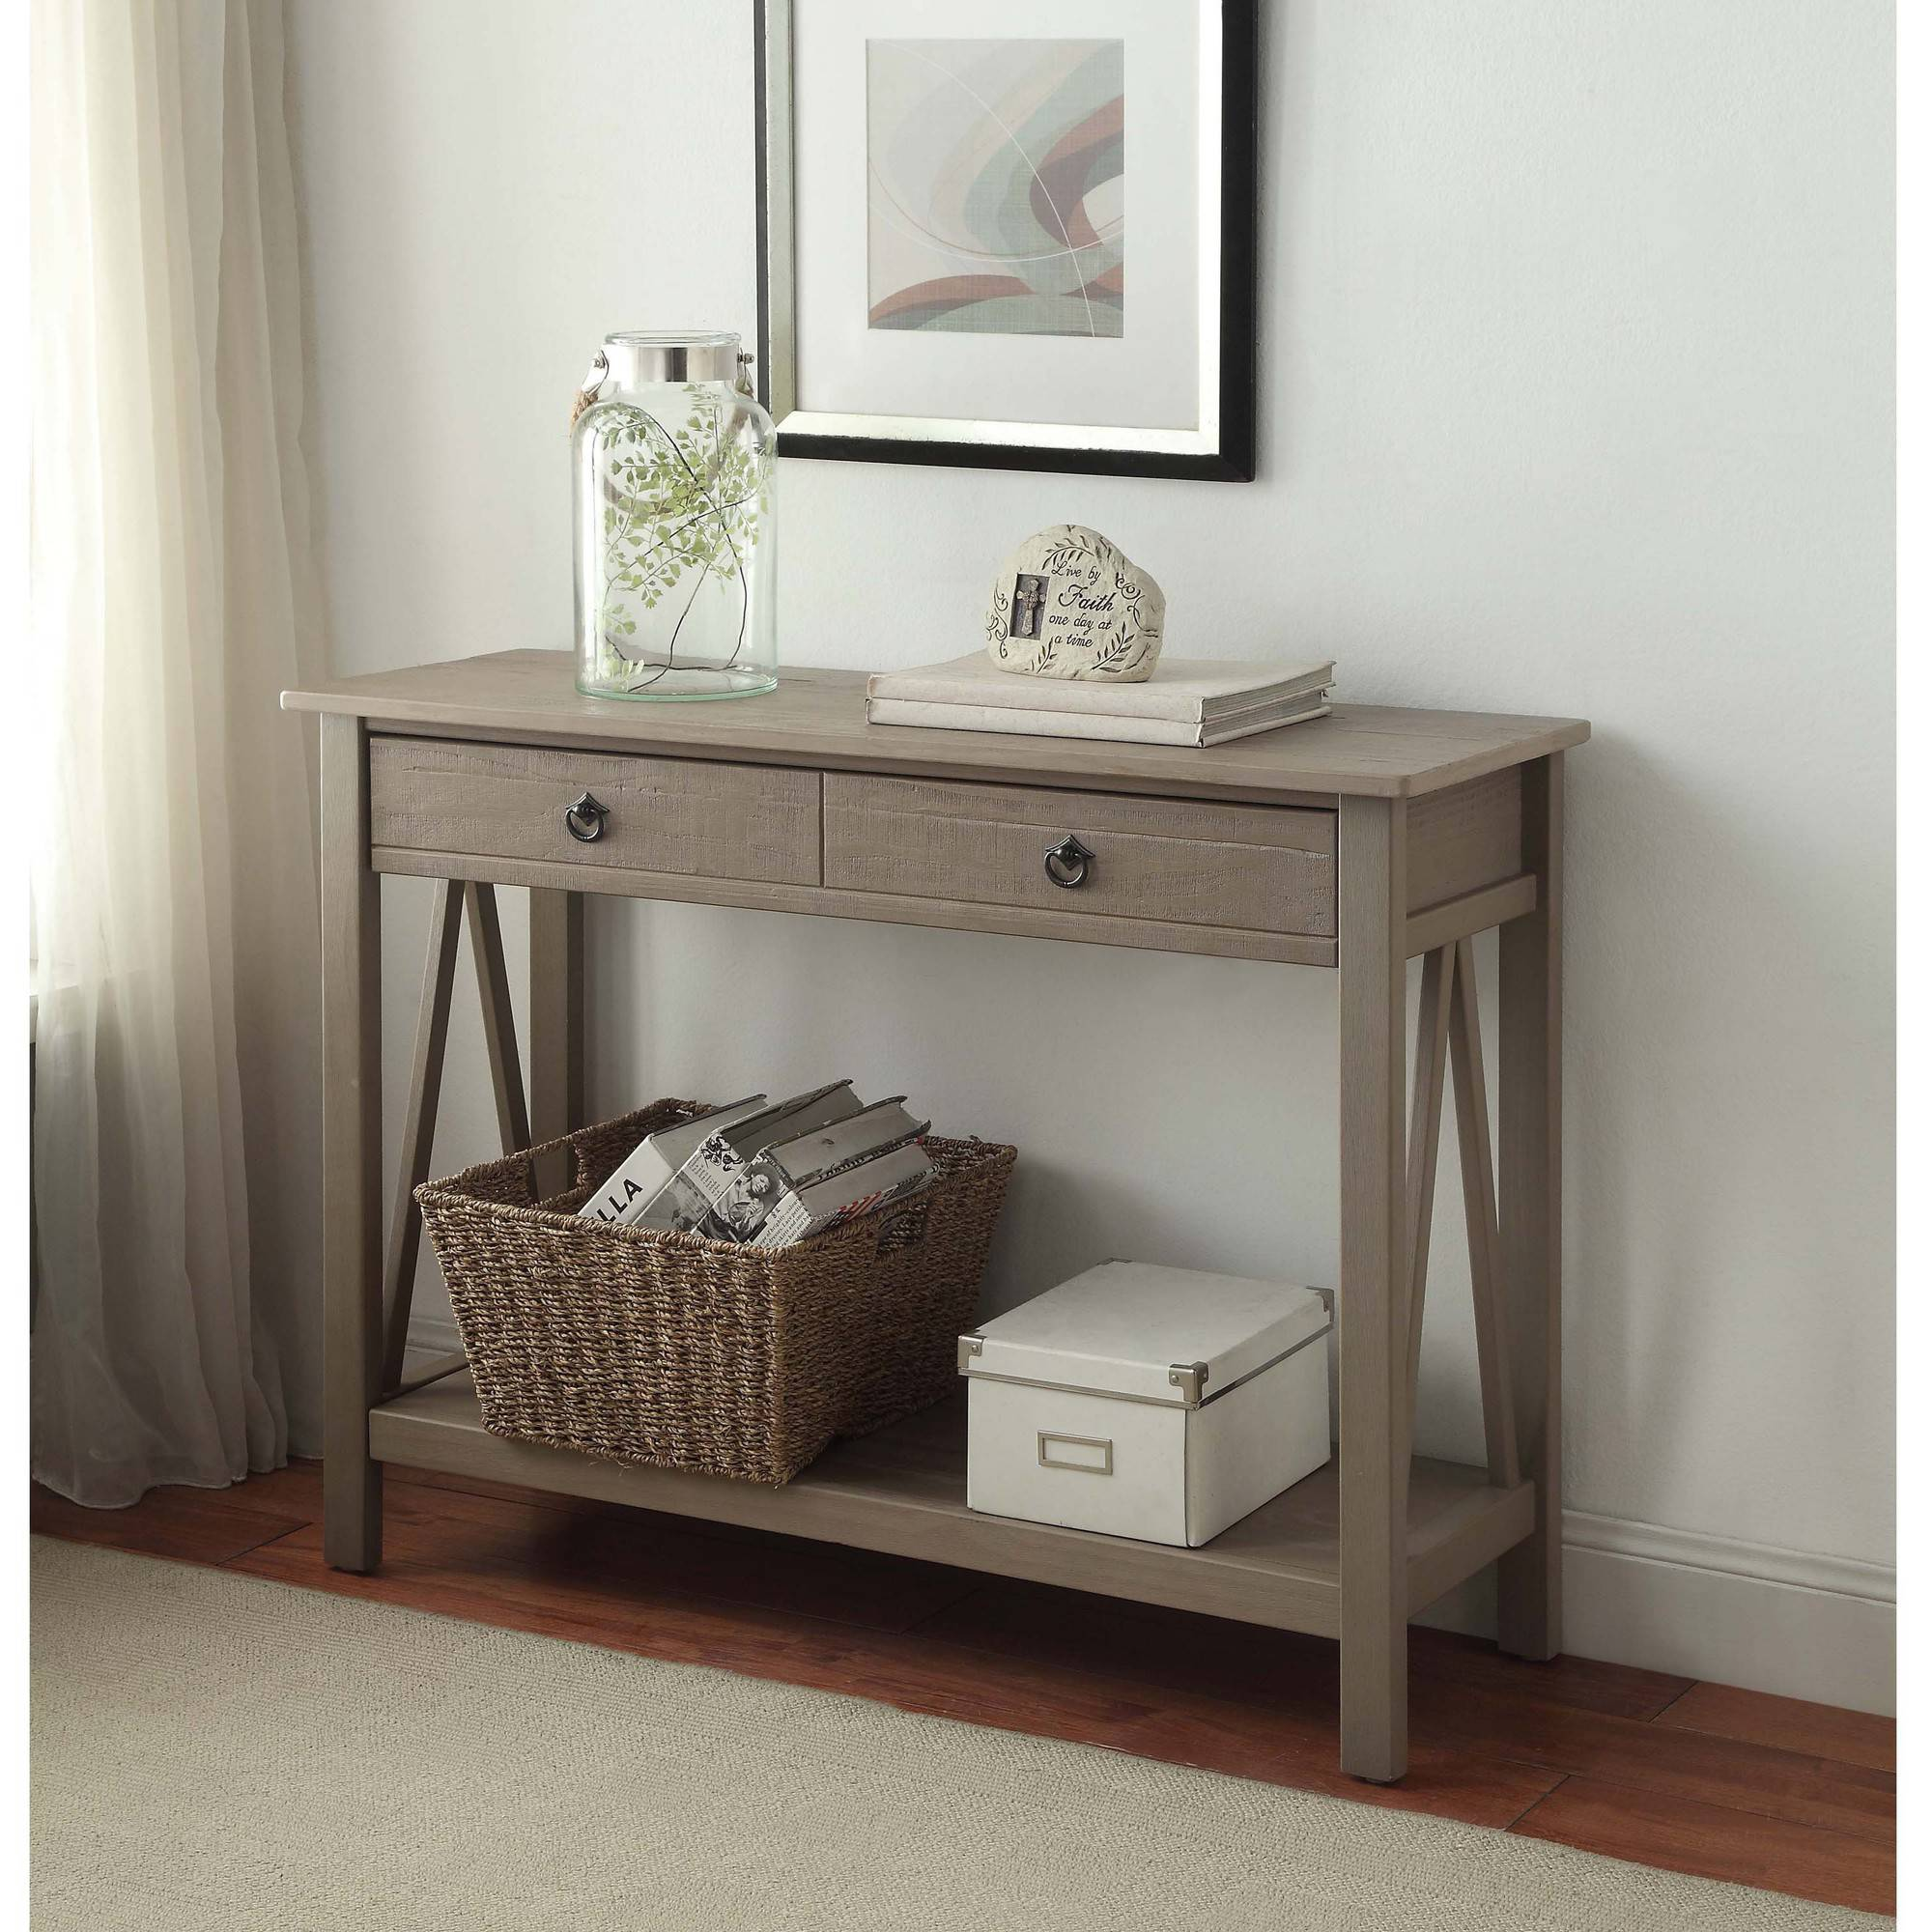 modern table ideas contemporary console tables entryway affordable threshold owings accent for archaic and adelaide fire pit mahogany nest kids nic pier one hayworth triangular